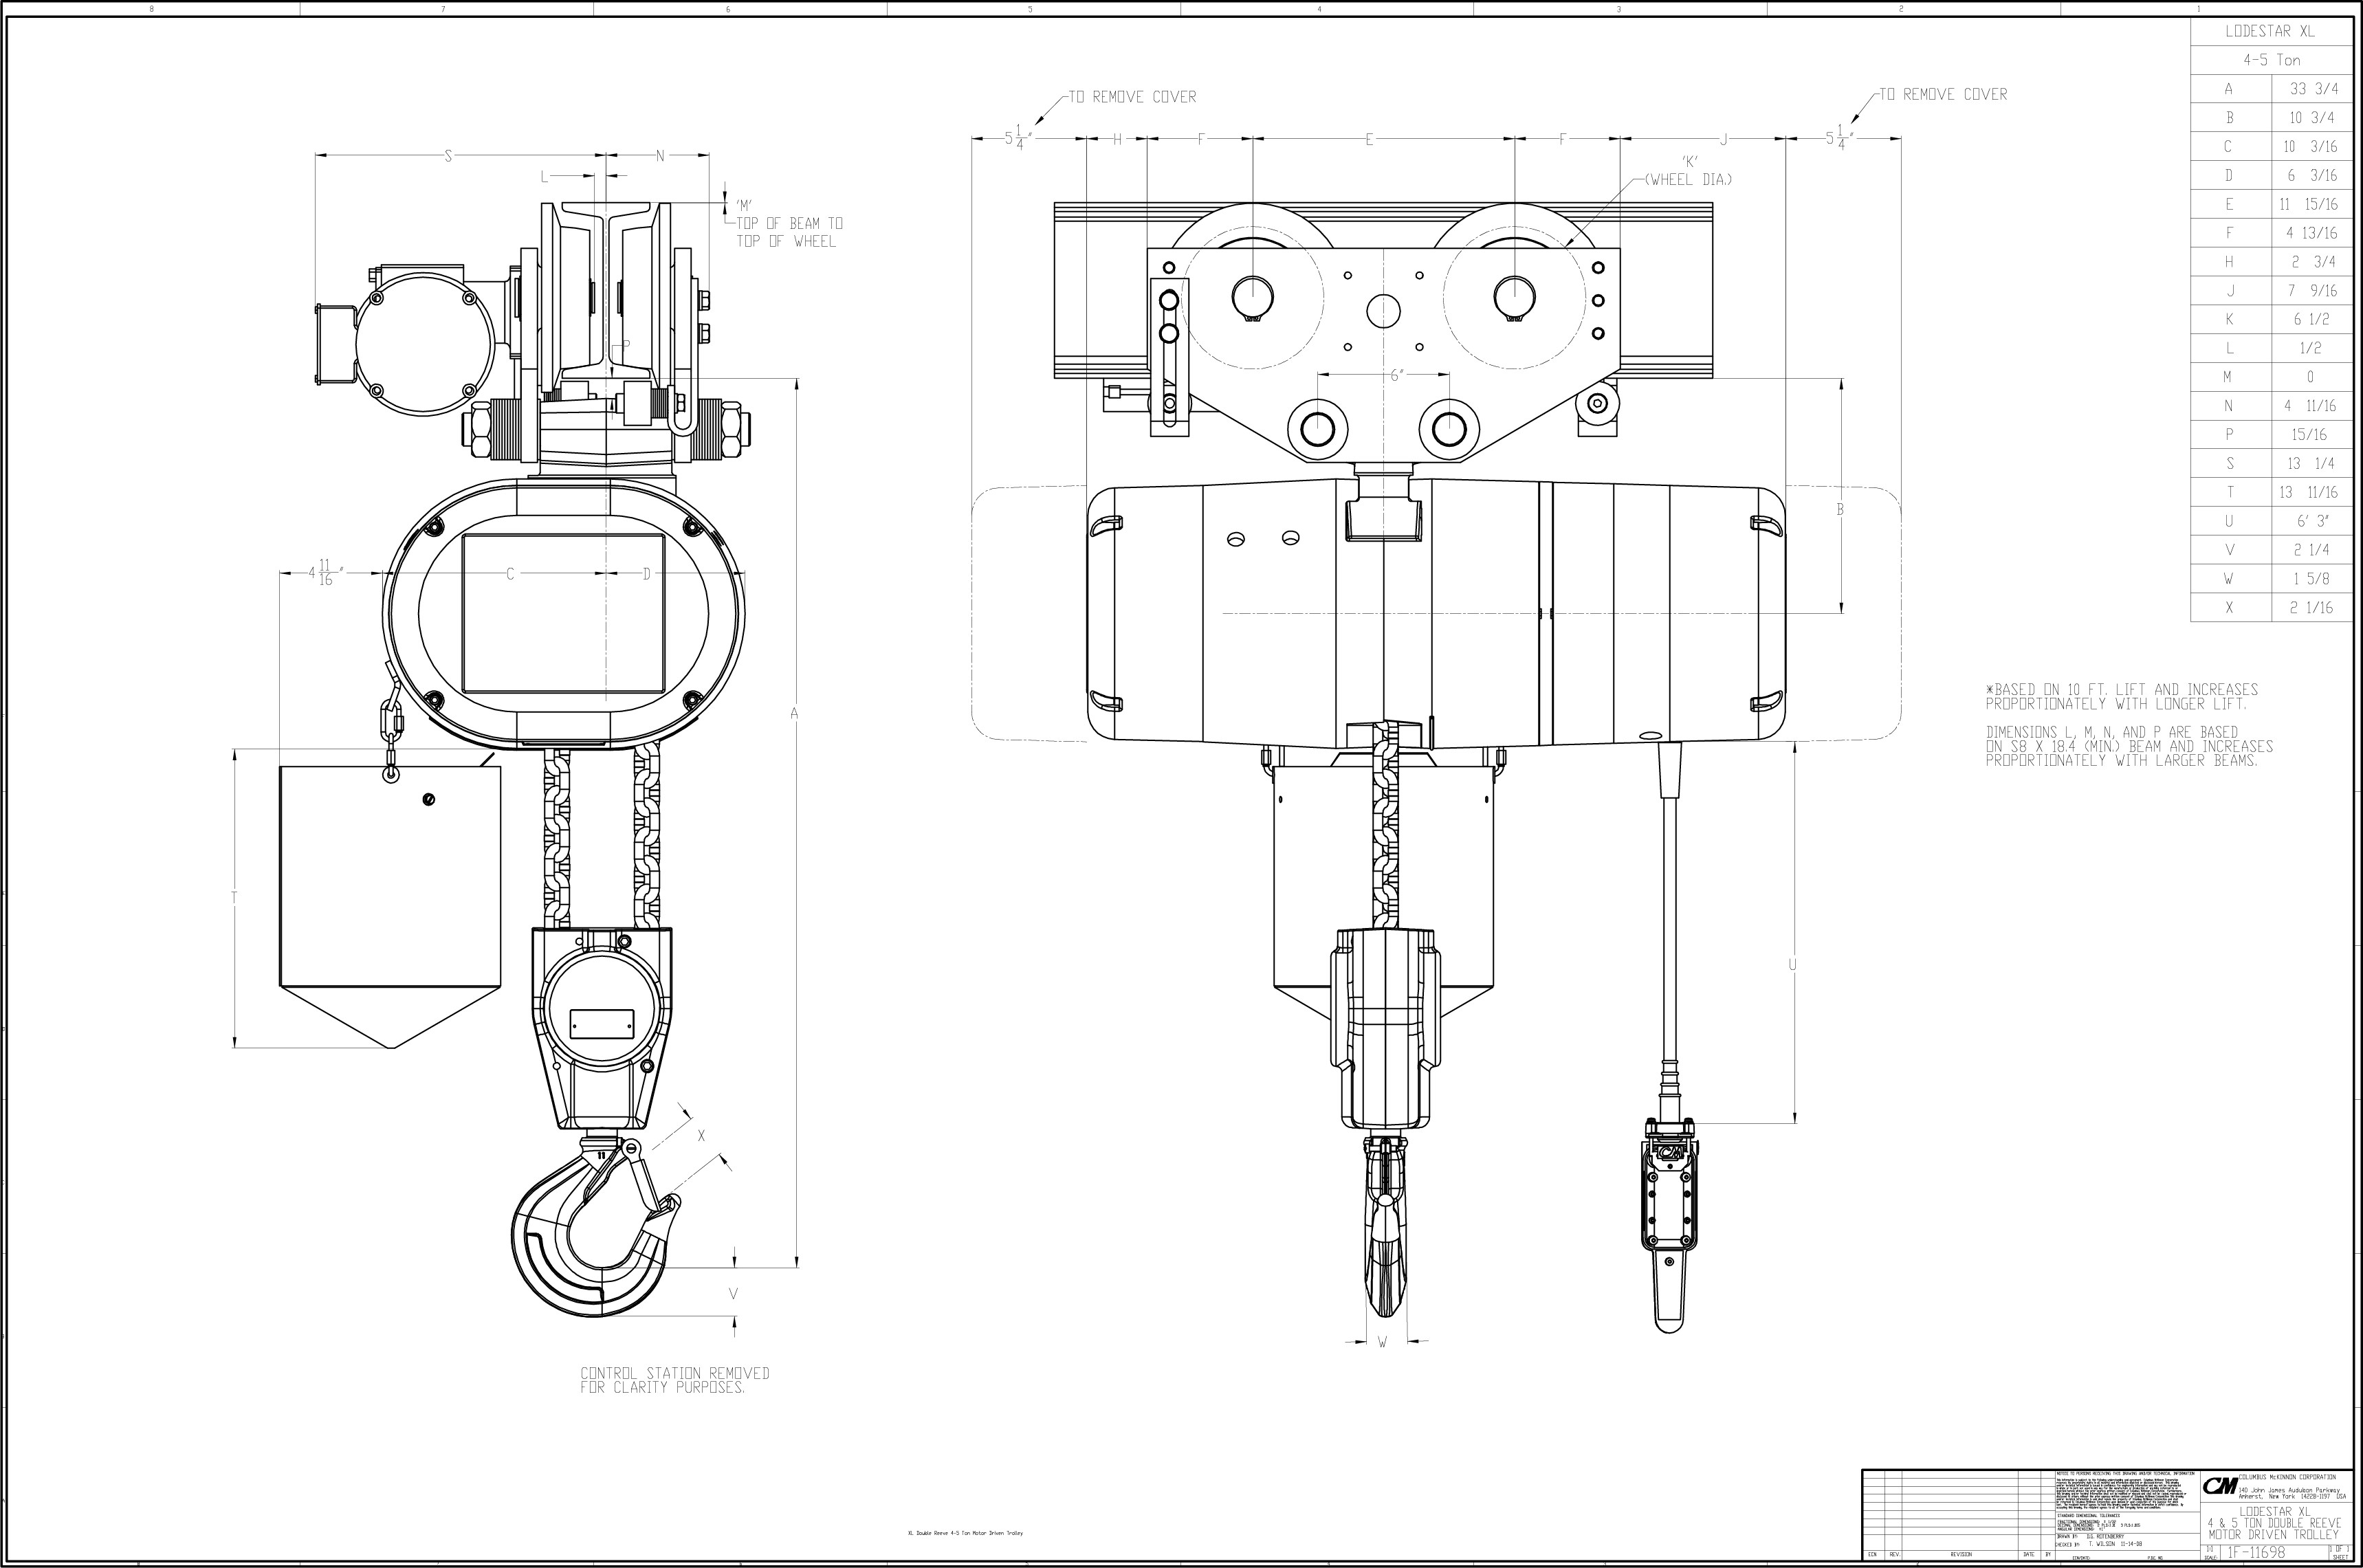 5 Ton Electric Chain Hoist. Diagrams. Wiring Diagram Images